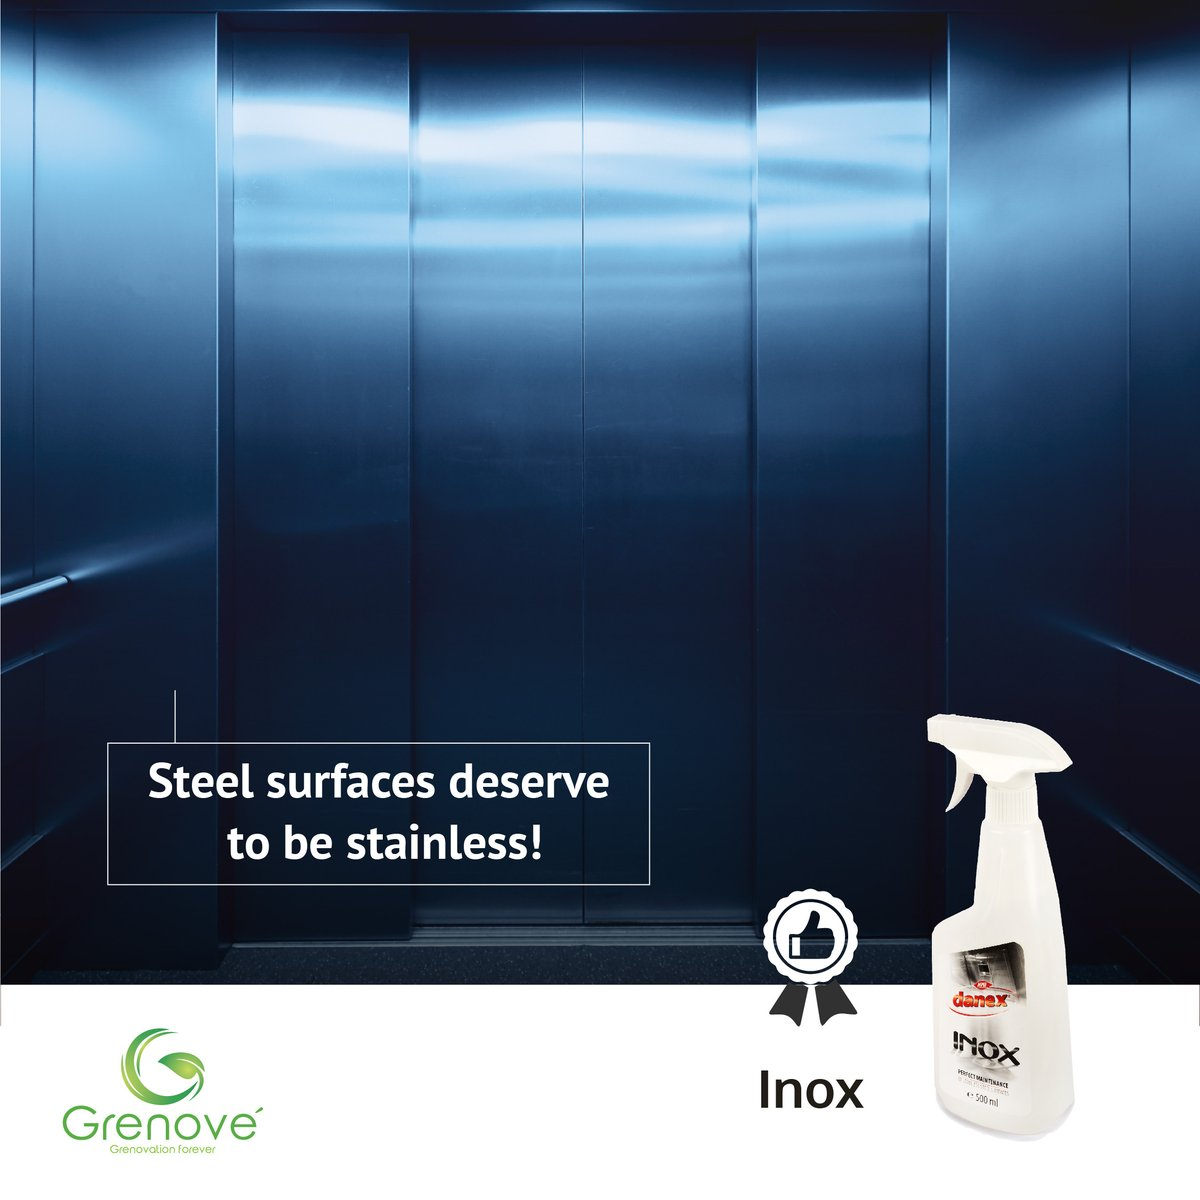 Clean, polish and protect stainless steel surfaces with Inox! #grenove #sustainablesolutions #ecofriendly #greenprojects #clean #cleanliness #cleaning  #contaminate #cleaningequipment #cleaningproducts #smartcleaning #cleansers #greenindiachallenge  #indianproducts #inoxpic.twitter.com/fZnn5SpmRA